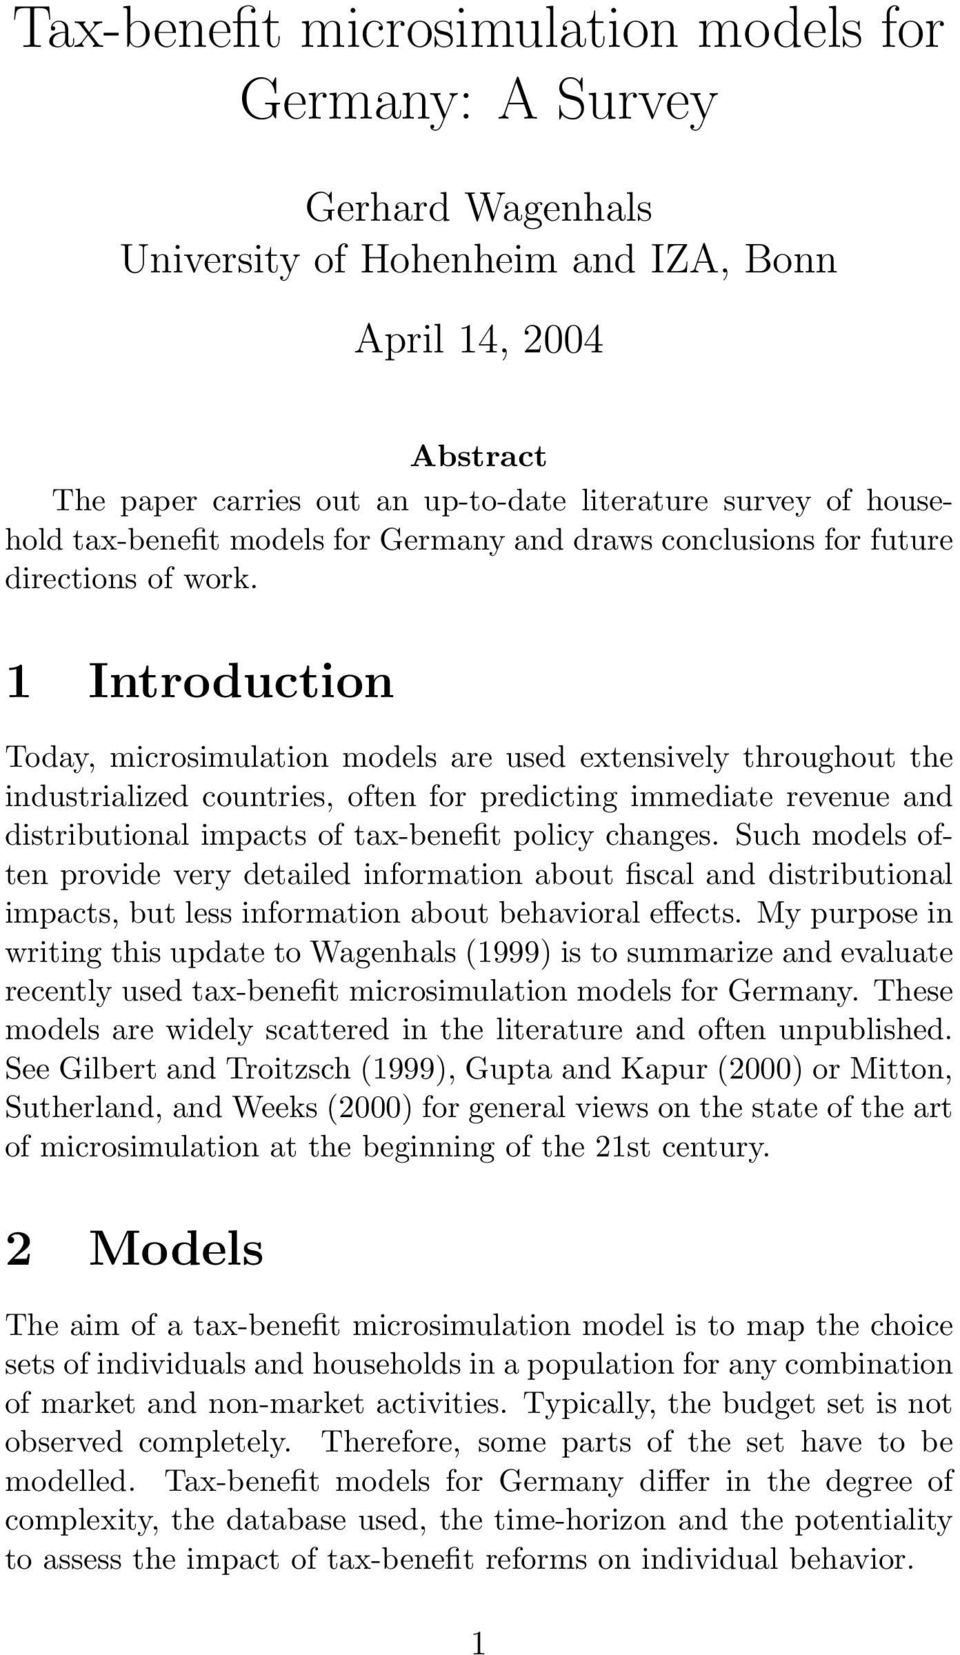 1 Introduction Today, microsimulation models are used extensively throughout the industrialized countries, often for predicting immediate revenue and distributional impacts of tax-benefit policy